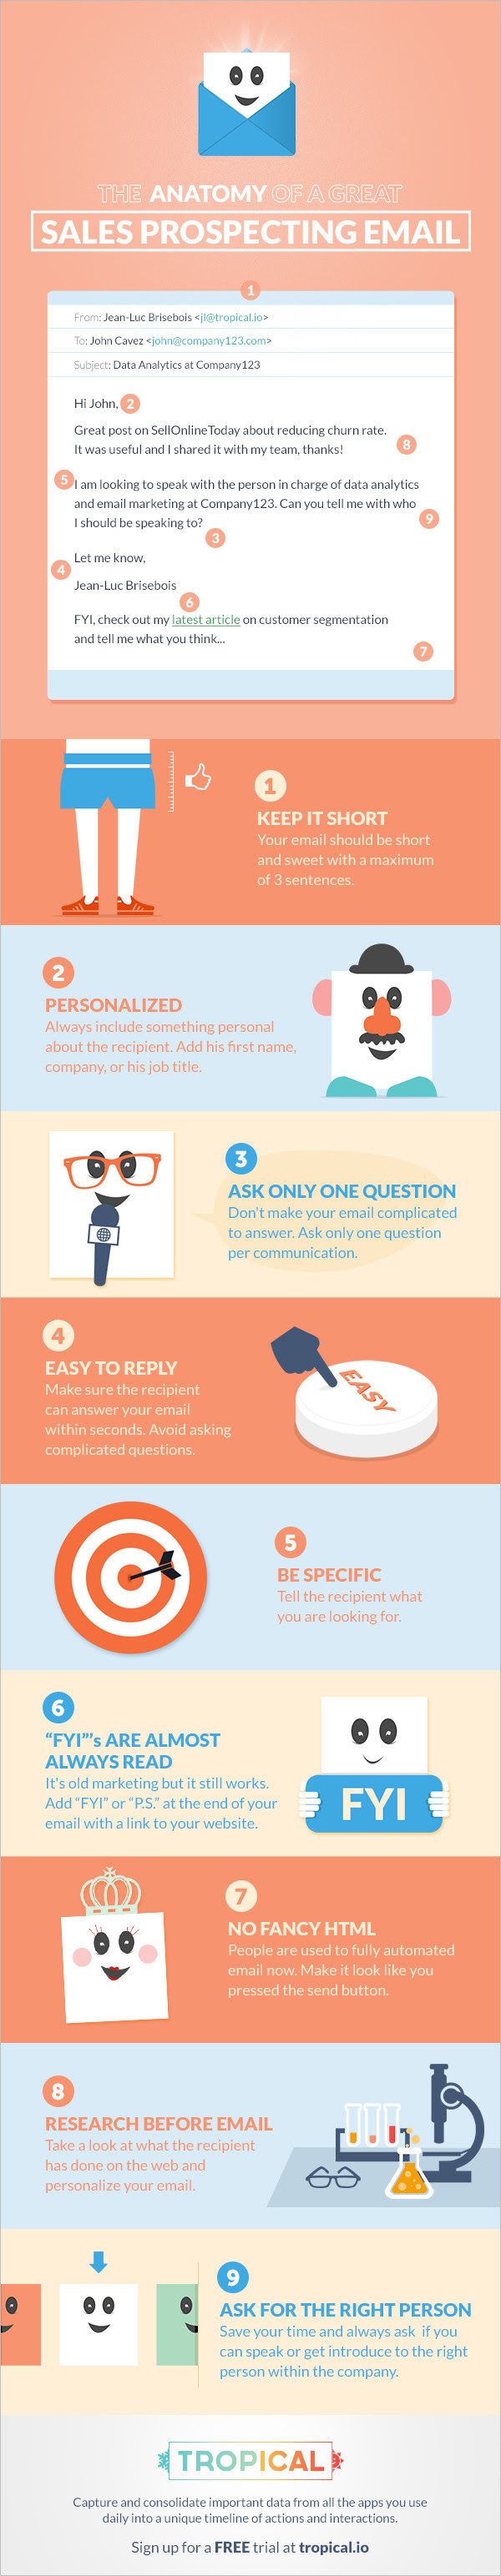 Infographic: The Anatomy Of A Great Sales Prospecting Email #infographic